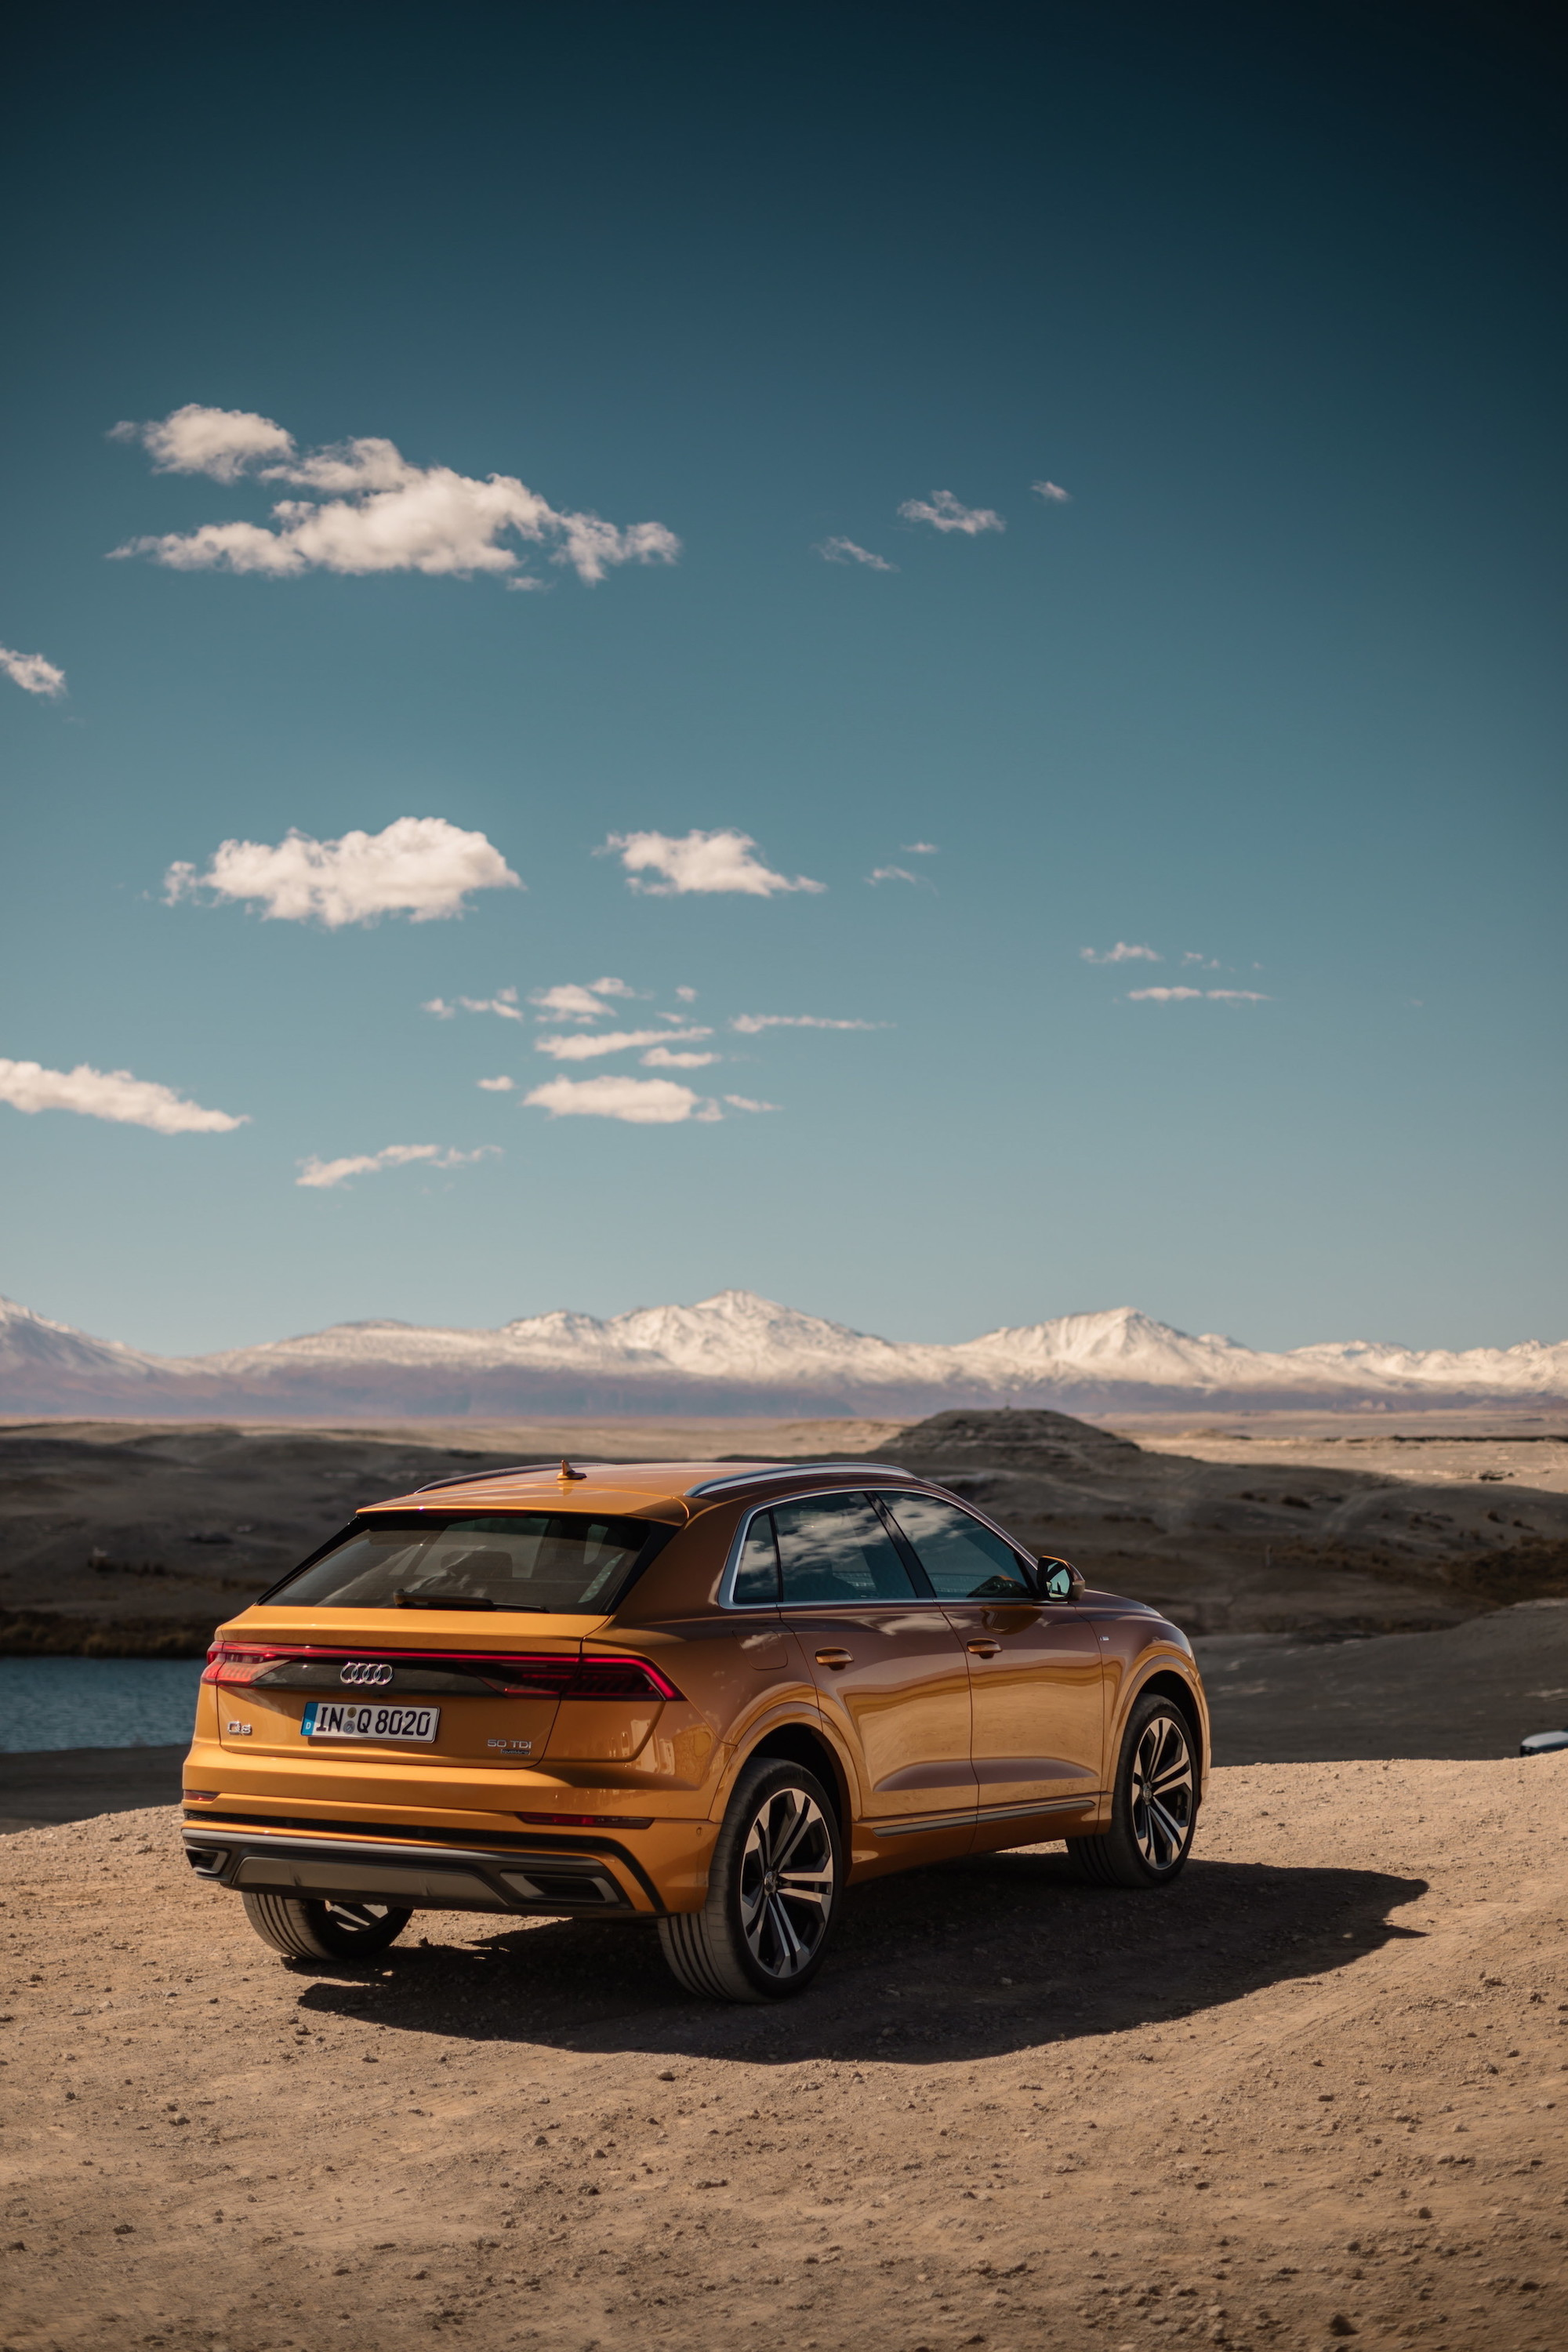 S Class Coupe >> The Audi Q8 - cars & life | cars fashion lifestyle blog